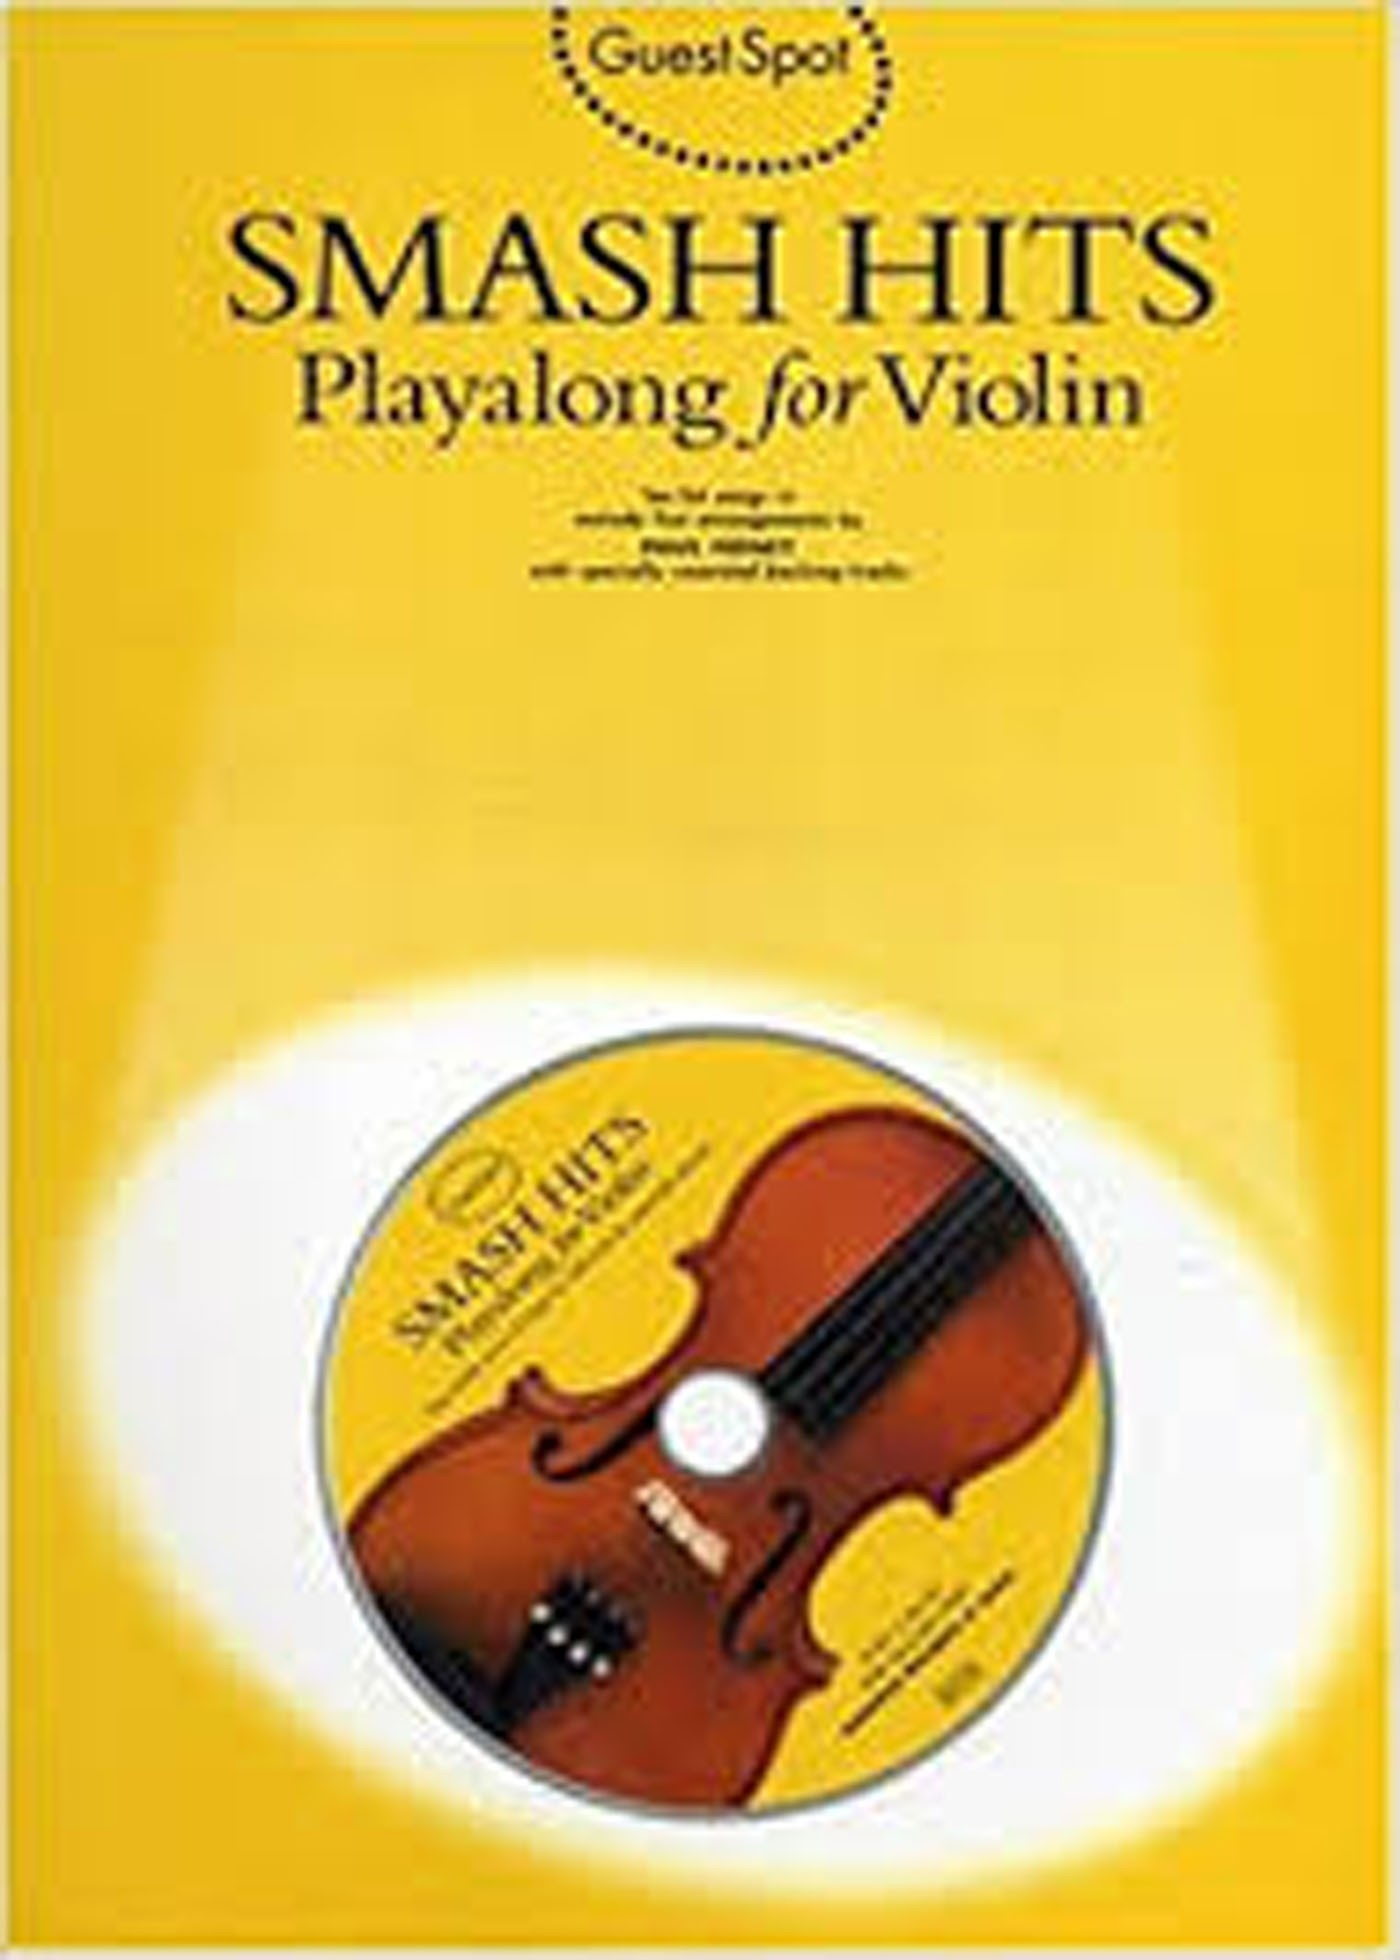 Guest Guest Spot Smash Hits Playalong for Violin Book CD S137